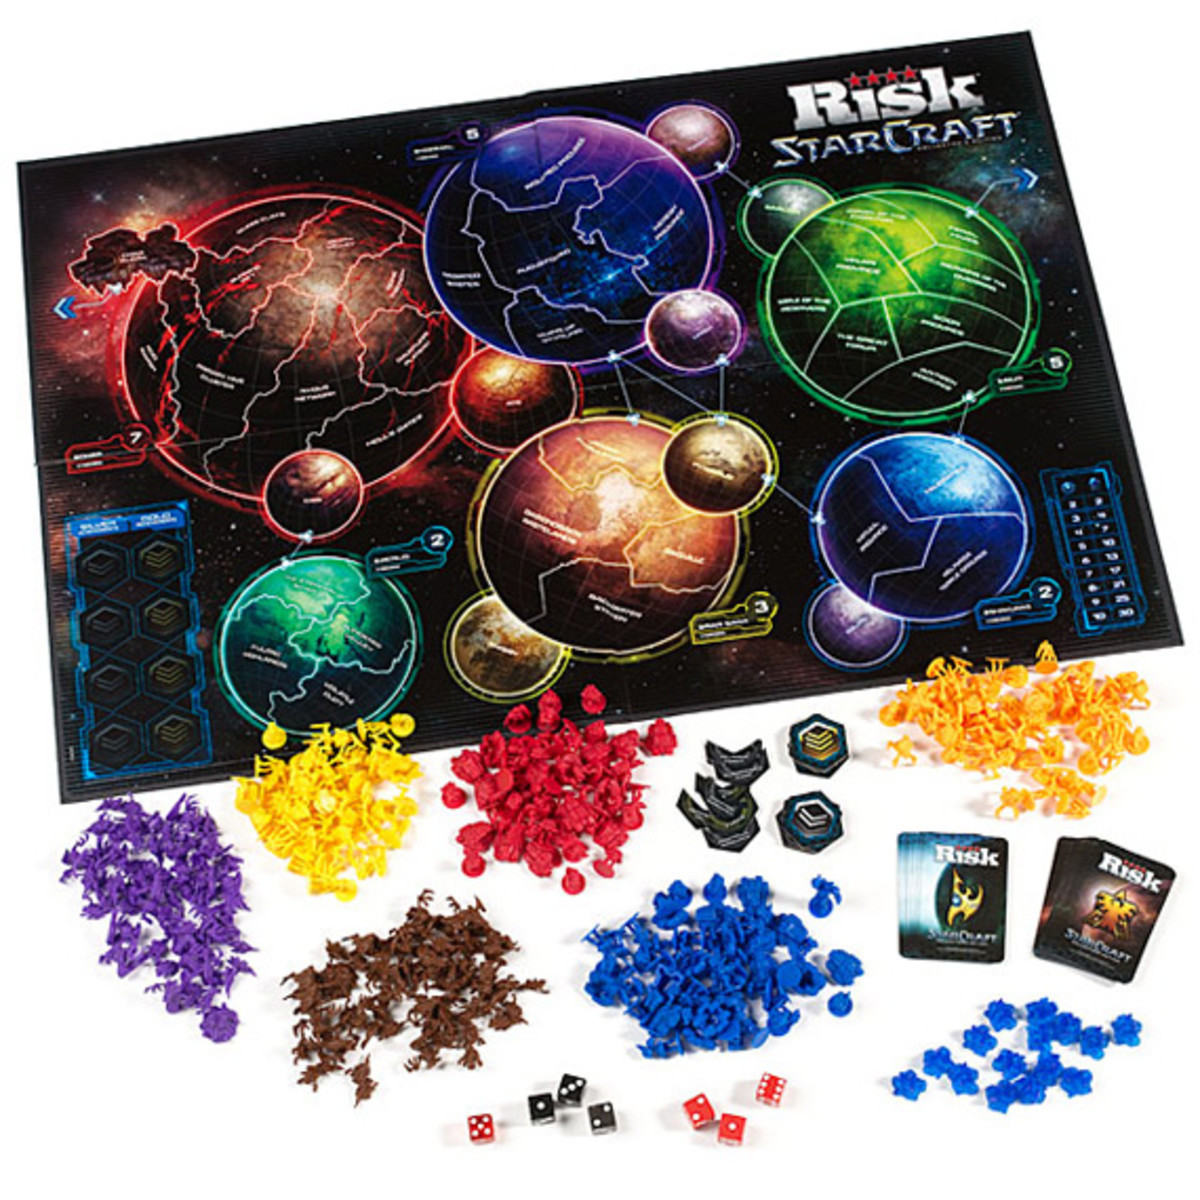 hasbro-blizzard-risk-starcraft-edition-board-game-02